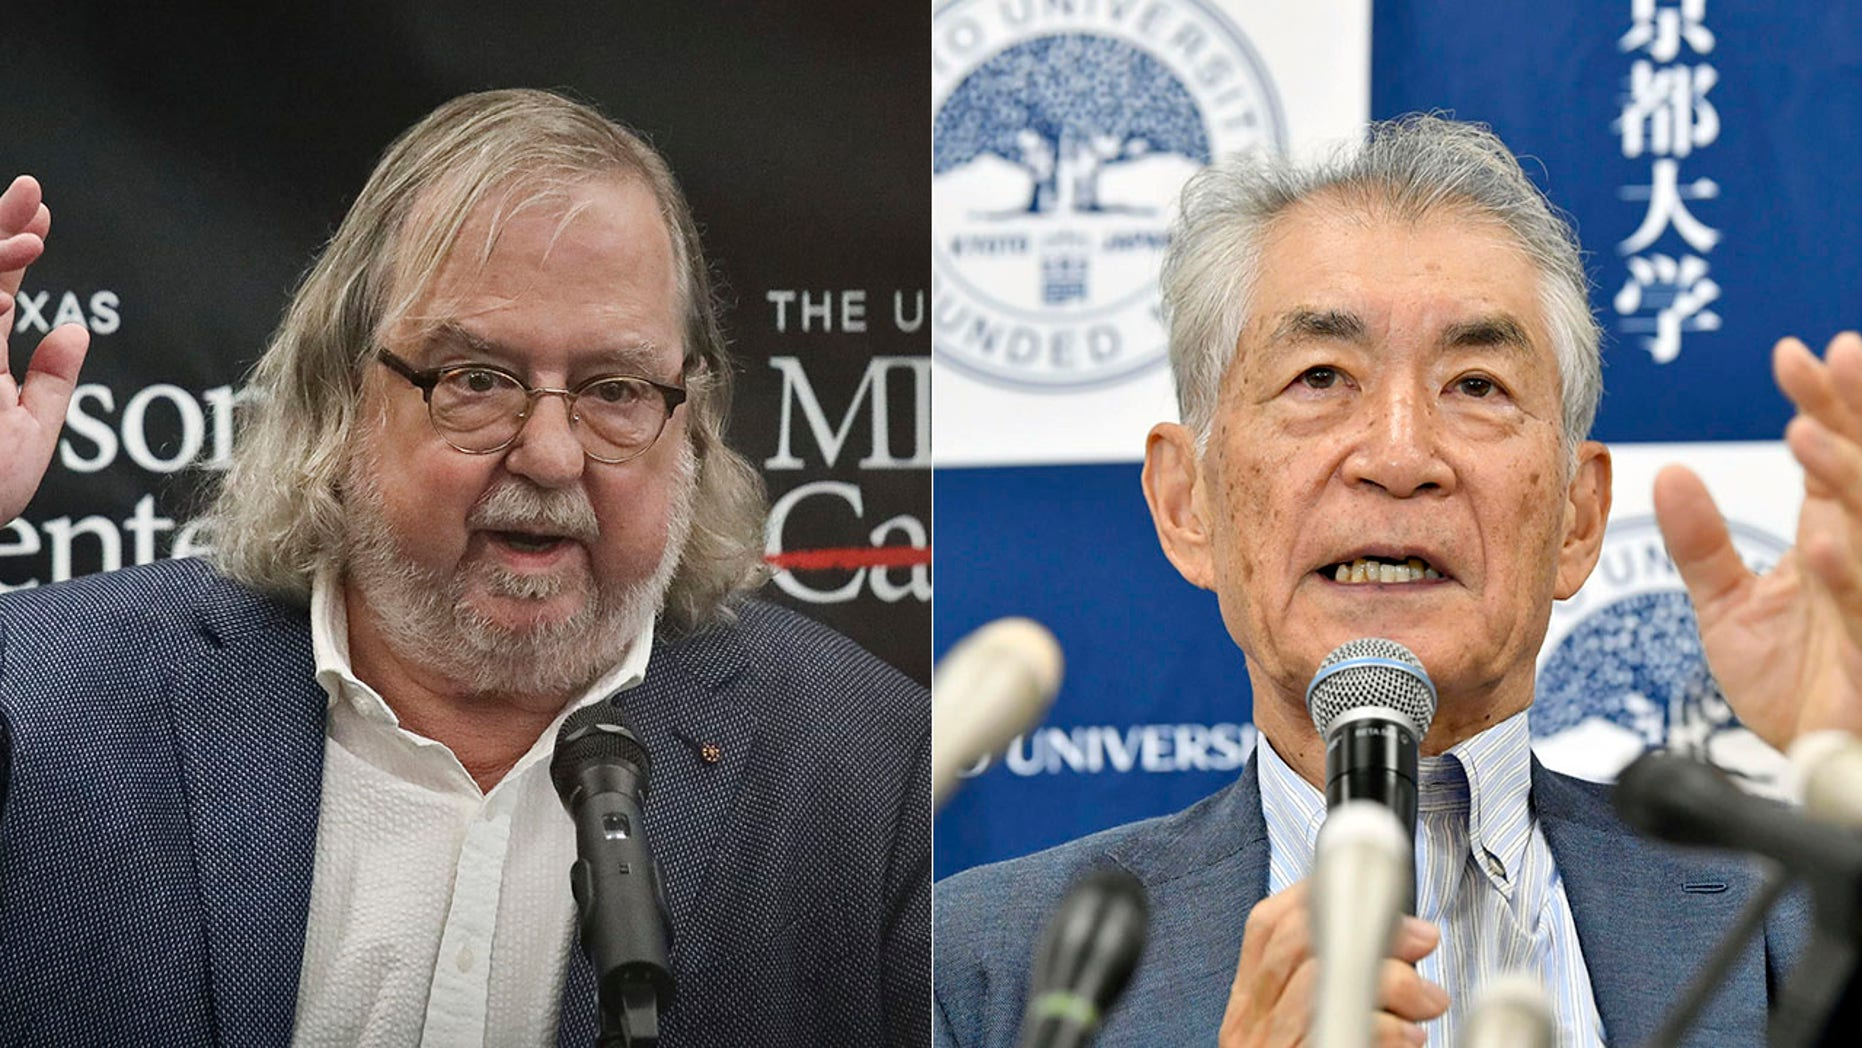 James Allison of the University of Texas and Tasuku Honjo of Kyoto University will share the 9-million-kronor ($1.01 million) prize for 2018.